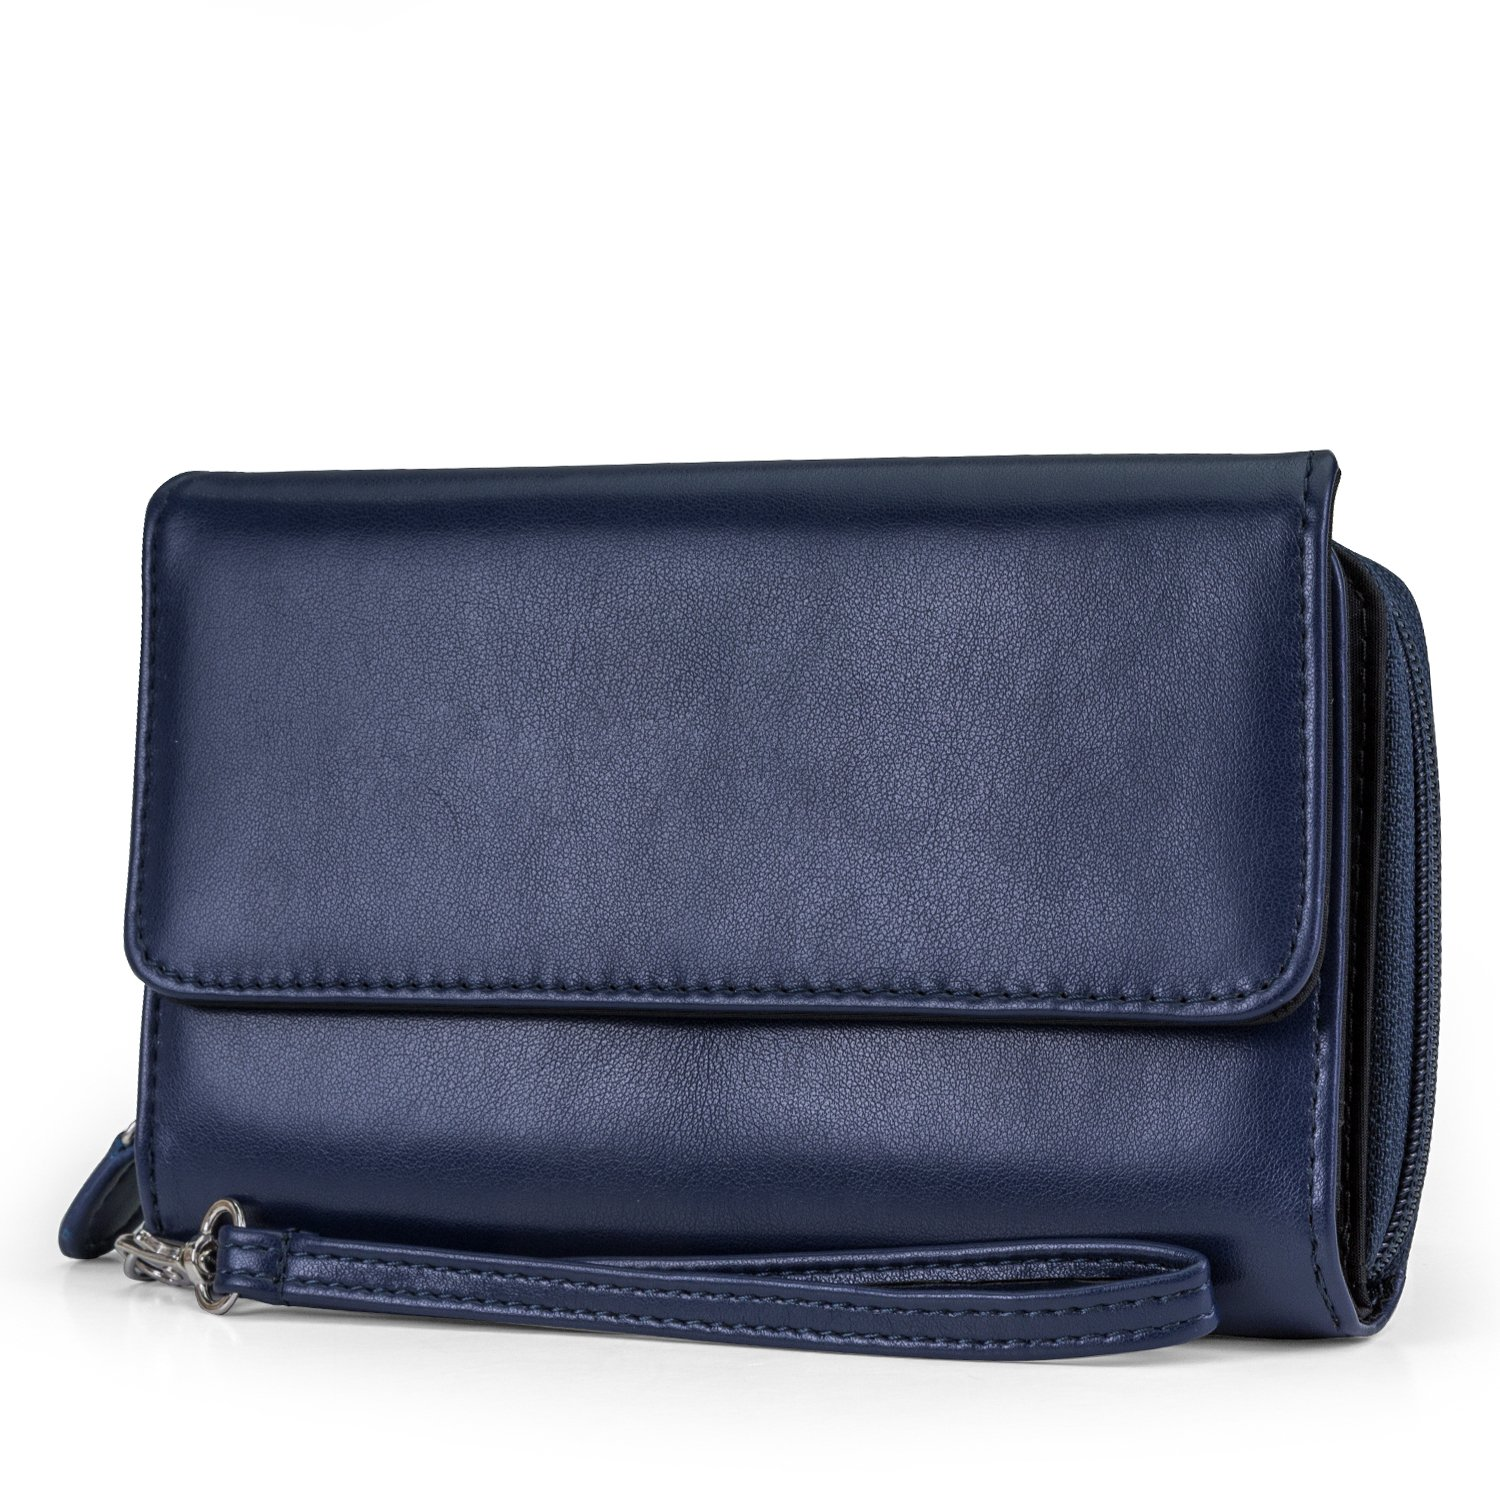 ecd4125eb030 Cheap Rfid Wallet, find Rfid Wallet deals on line at Alibaba.com